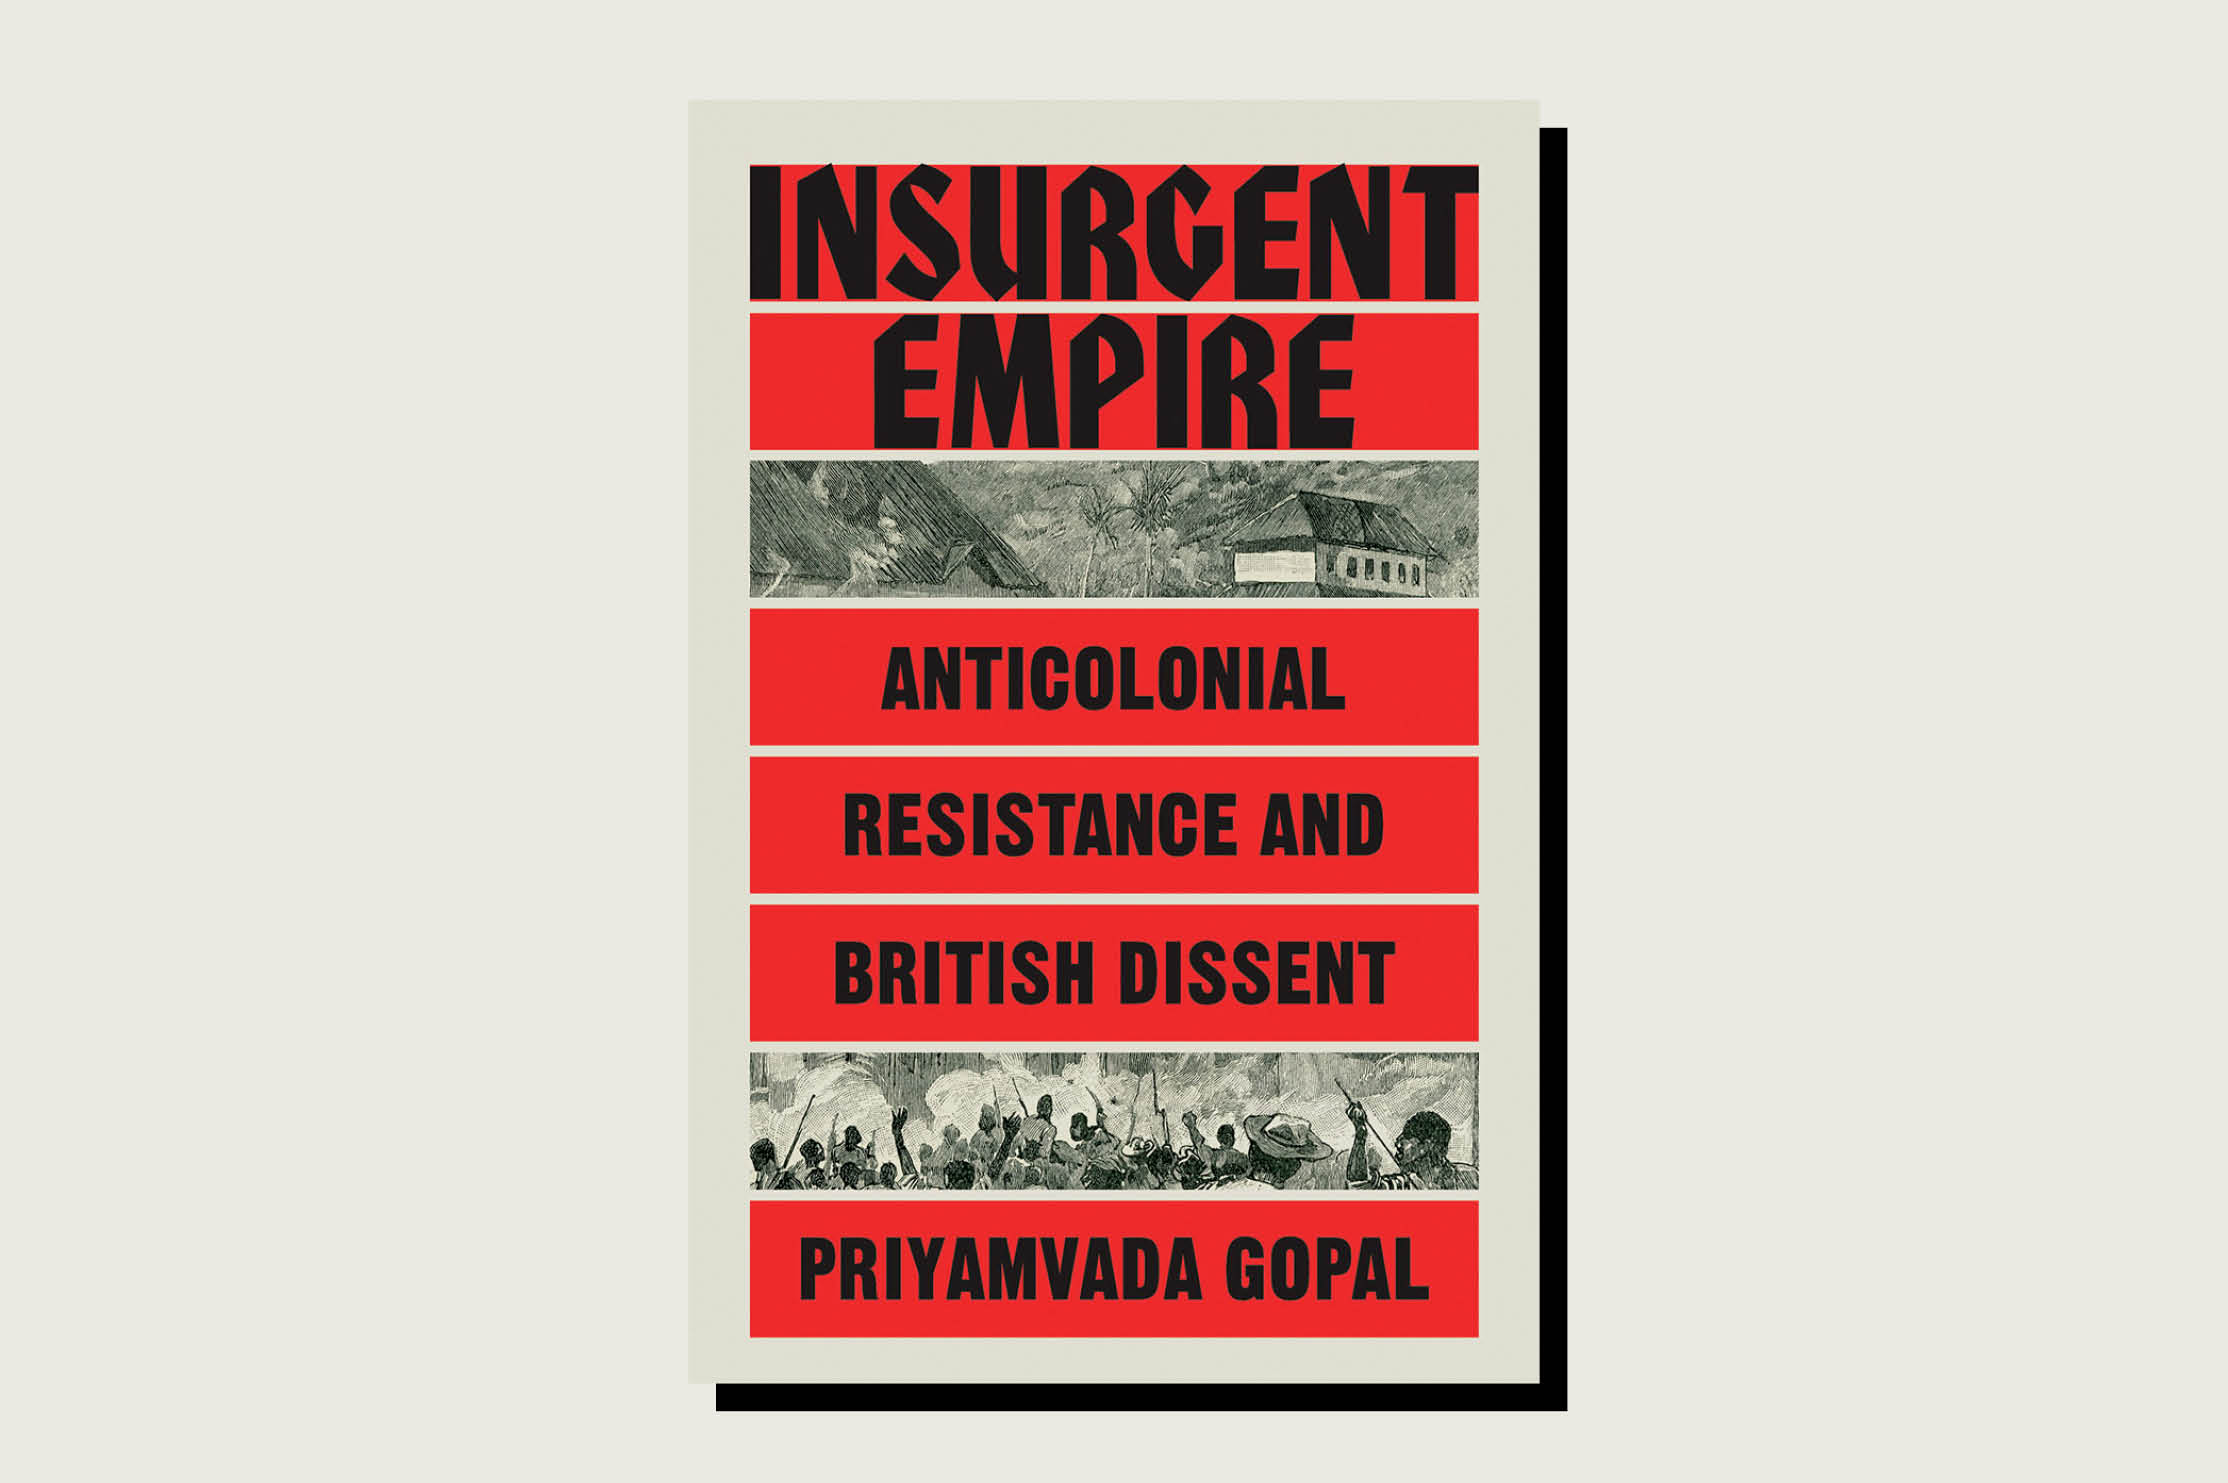 Insurgent Empire: Anticolonial Resistance and British Dissent, Priyamvada Gopal, Verso Books, 624 pp., .95, June 2019